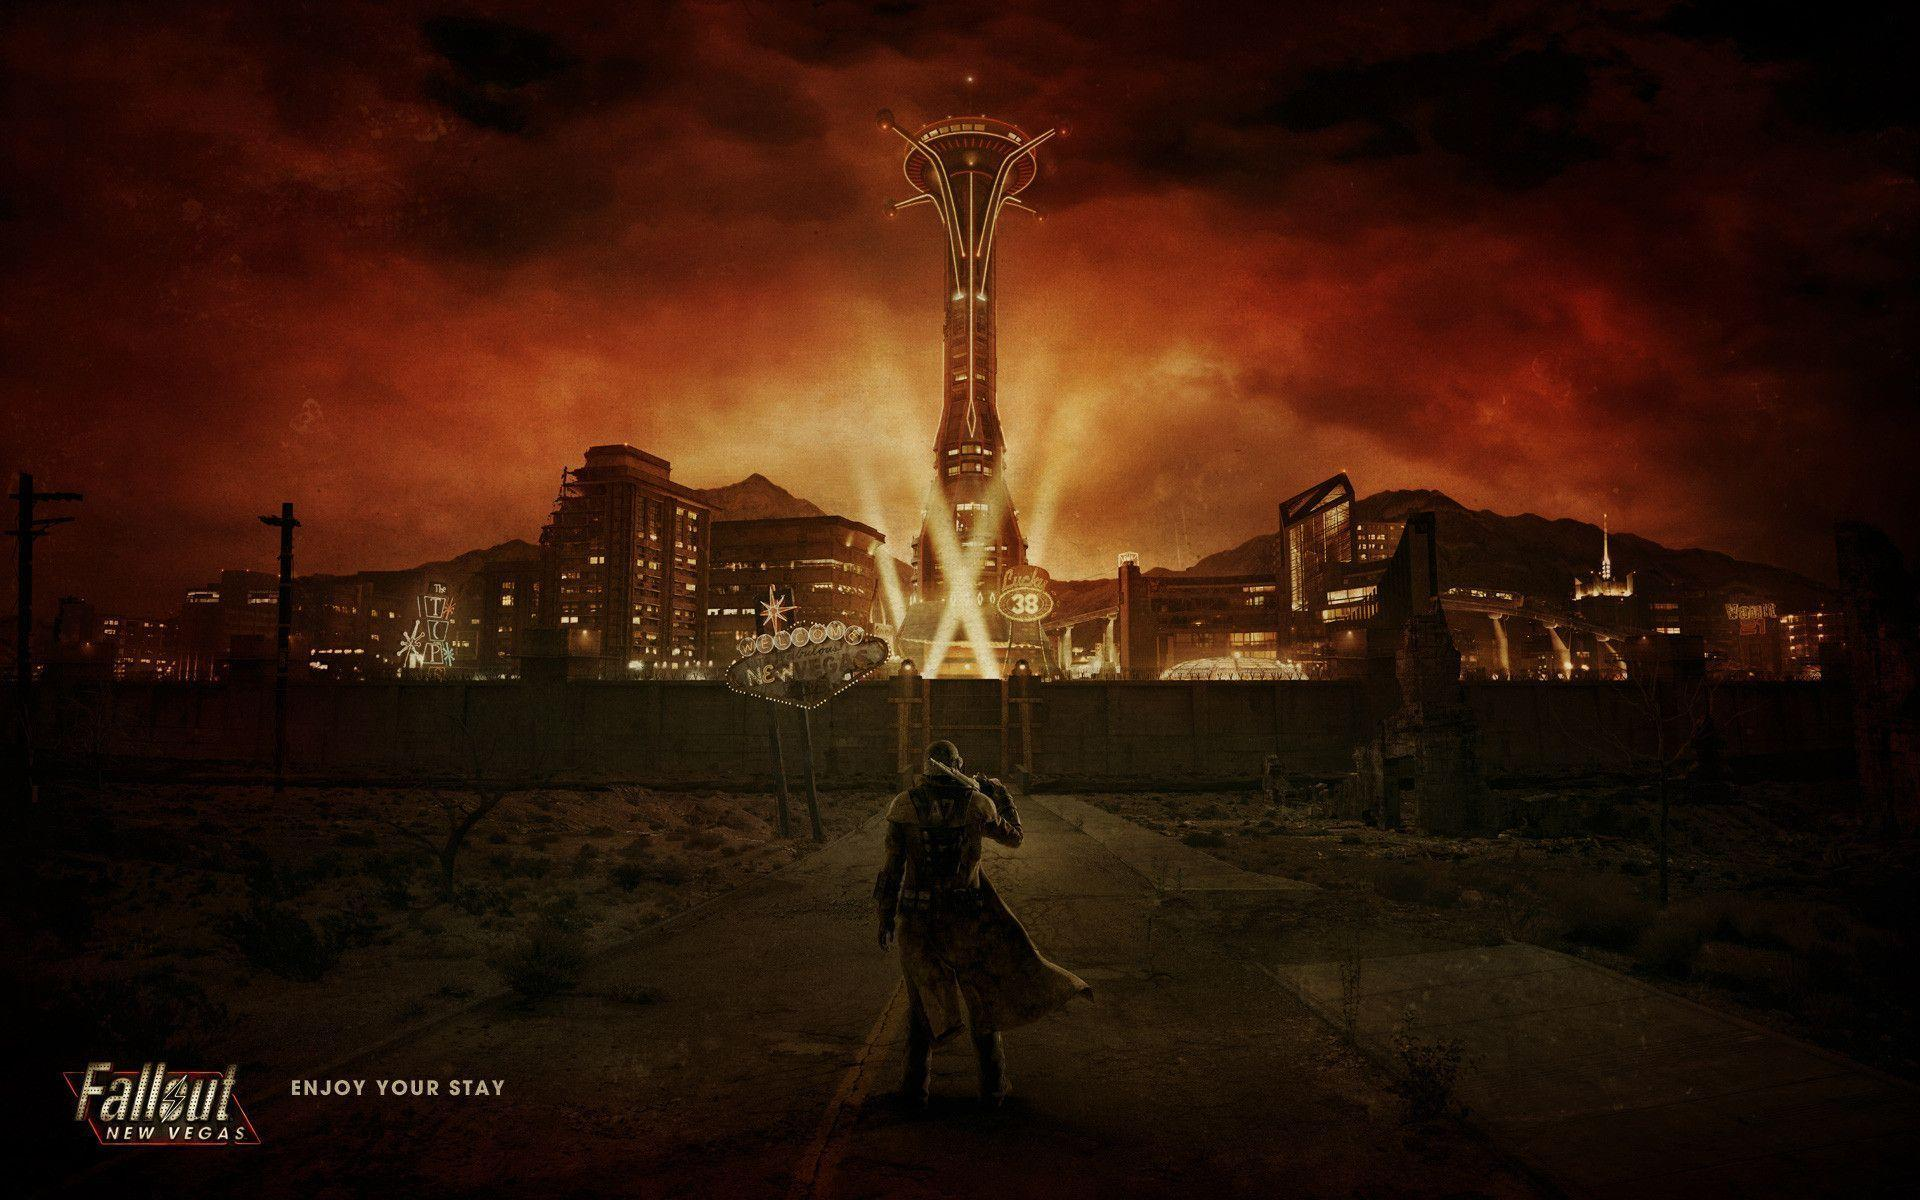 Fallout New Vegas Wallpapers Wallpaper Cave